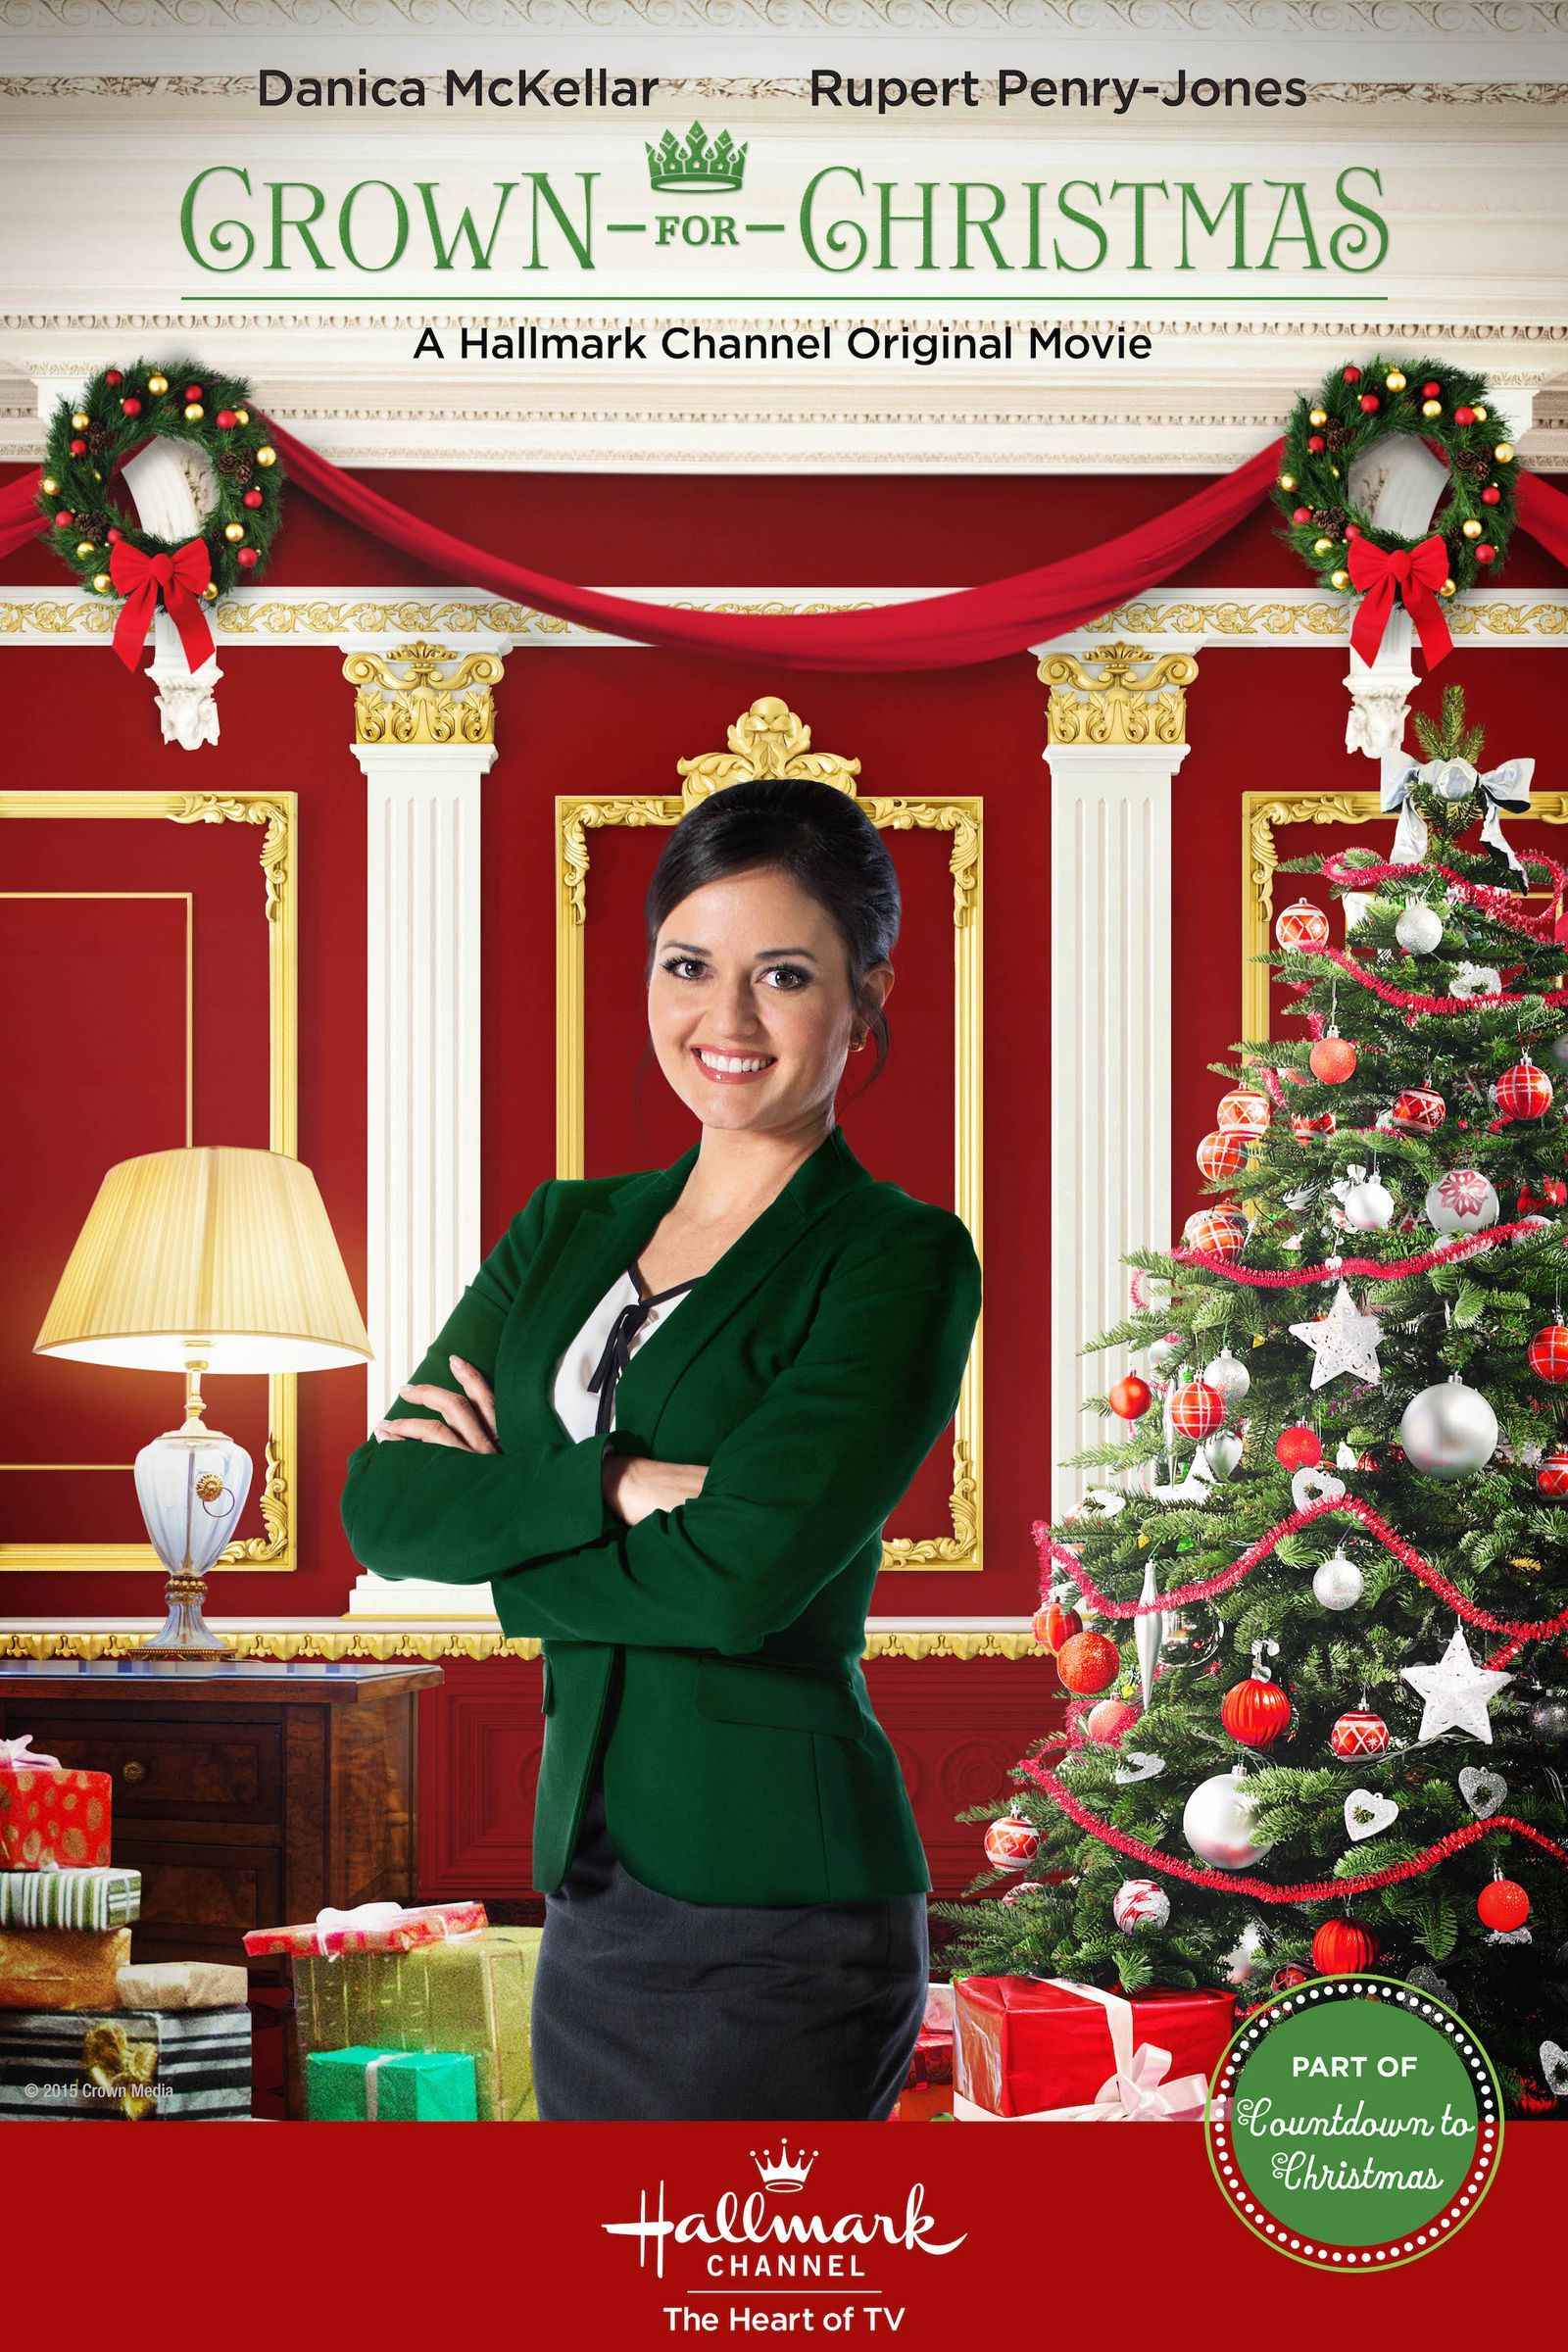 A Definitive Ranking Of The Best Hallmark Christmas Movies Hallmark Christmas Movies Full Movies Online Free A Crown For Christmas